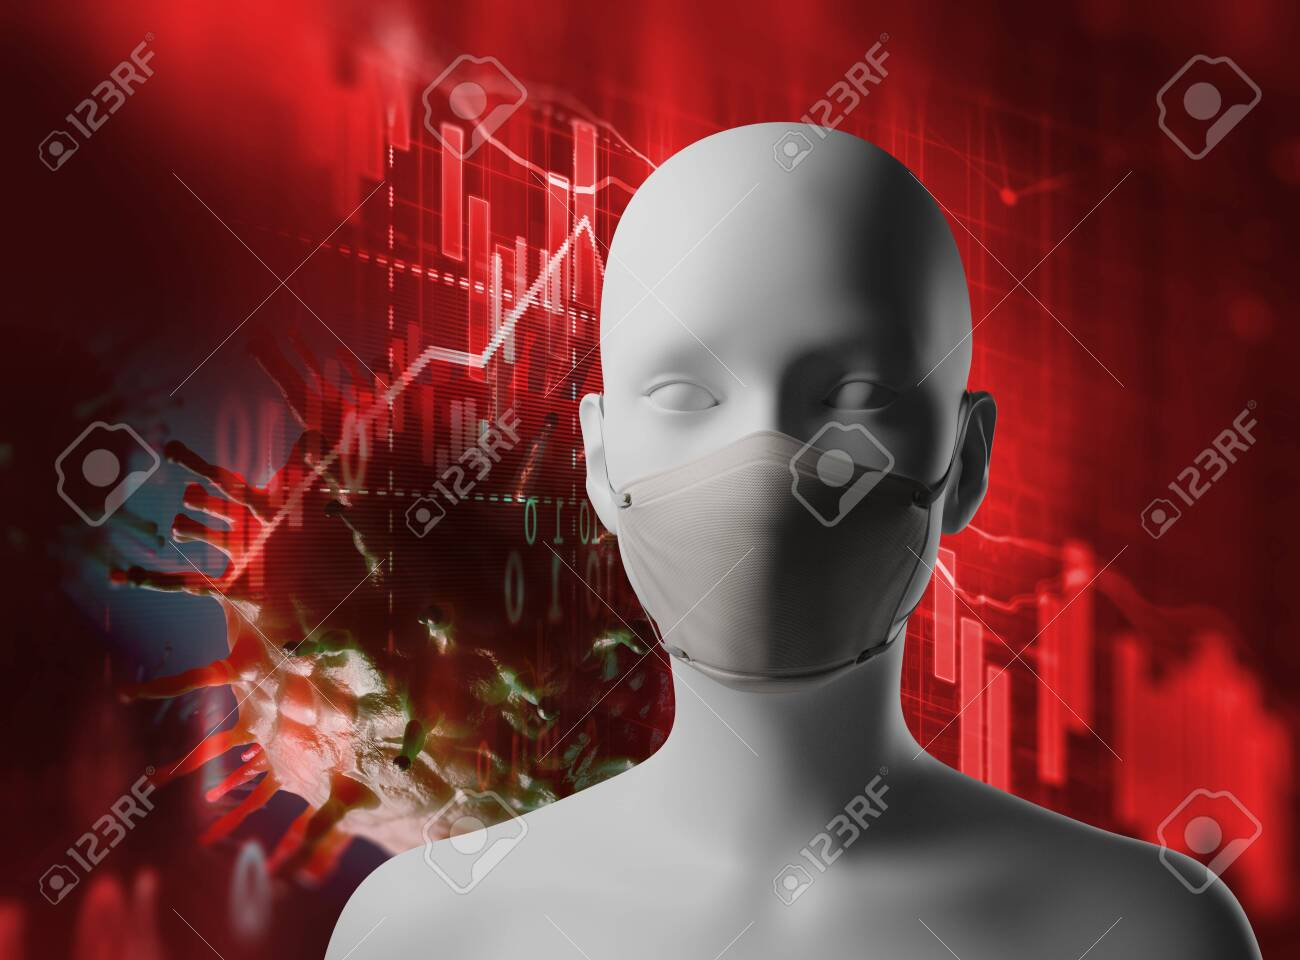 Microscope close up of covid 19 virus and human wearing mask on business graph concept of economic crisis. - 143875177